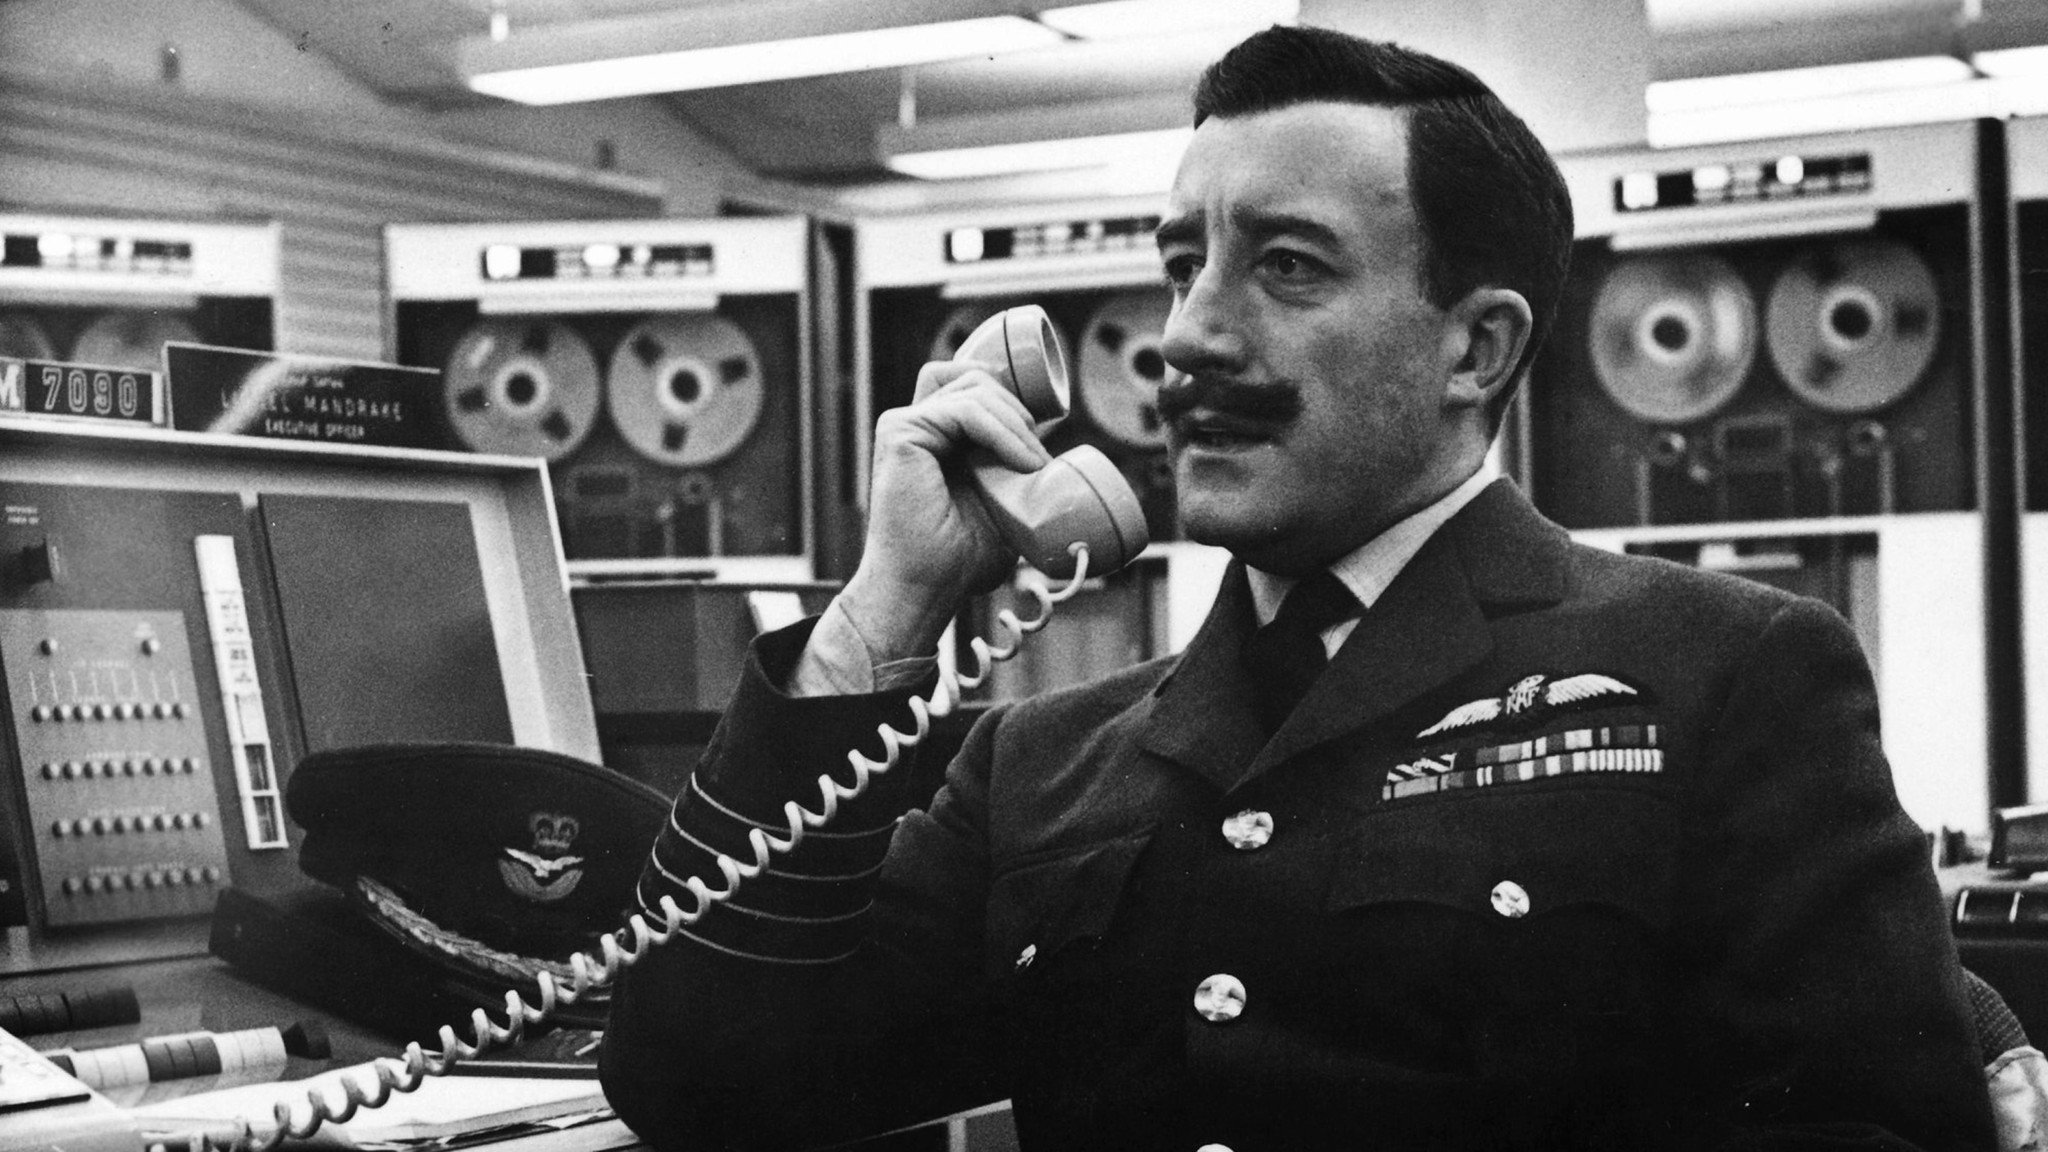 Blah Blah Inc.Why I Love: Dr. Strangelove or: How I Learned To Stop Worrying And Love The BombPost navigationRecent PostsArchivesCategories